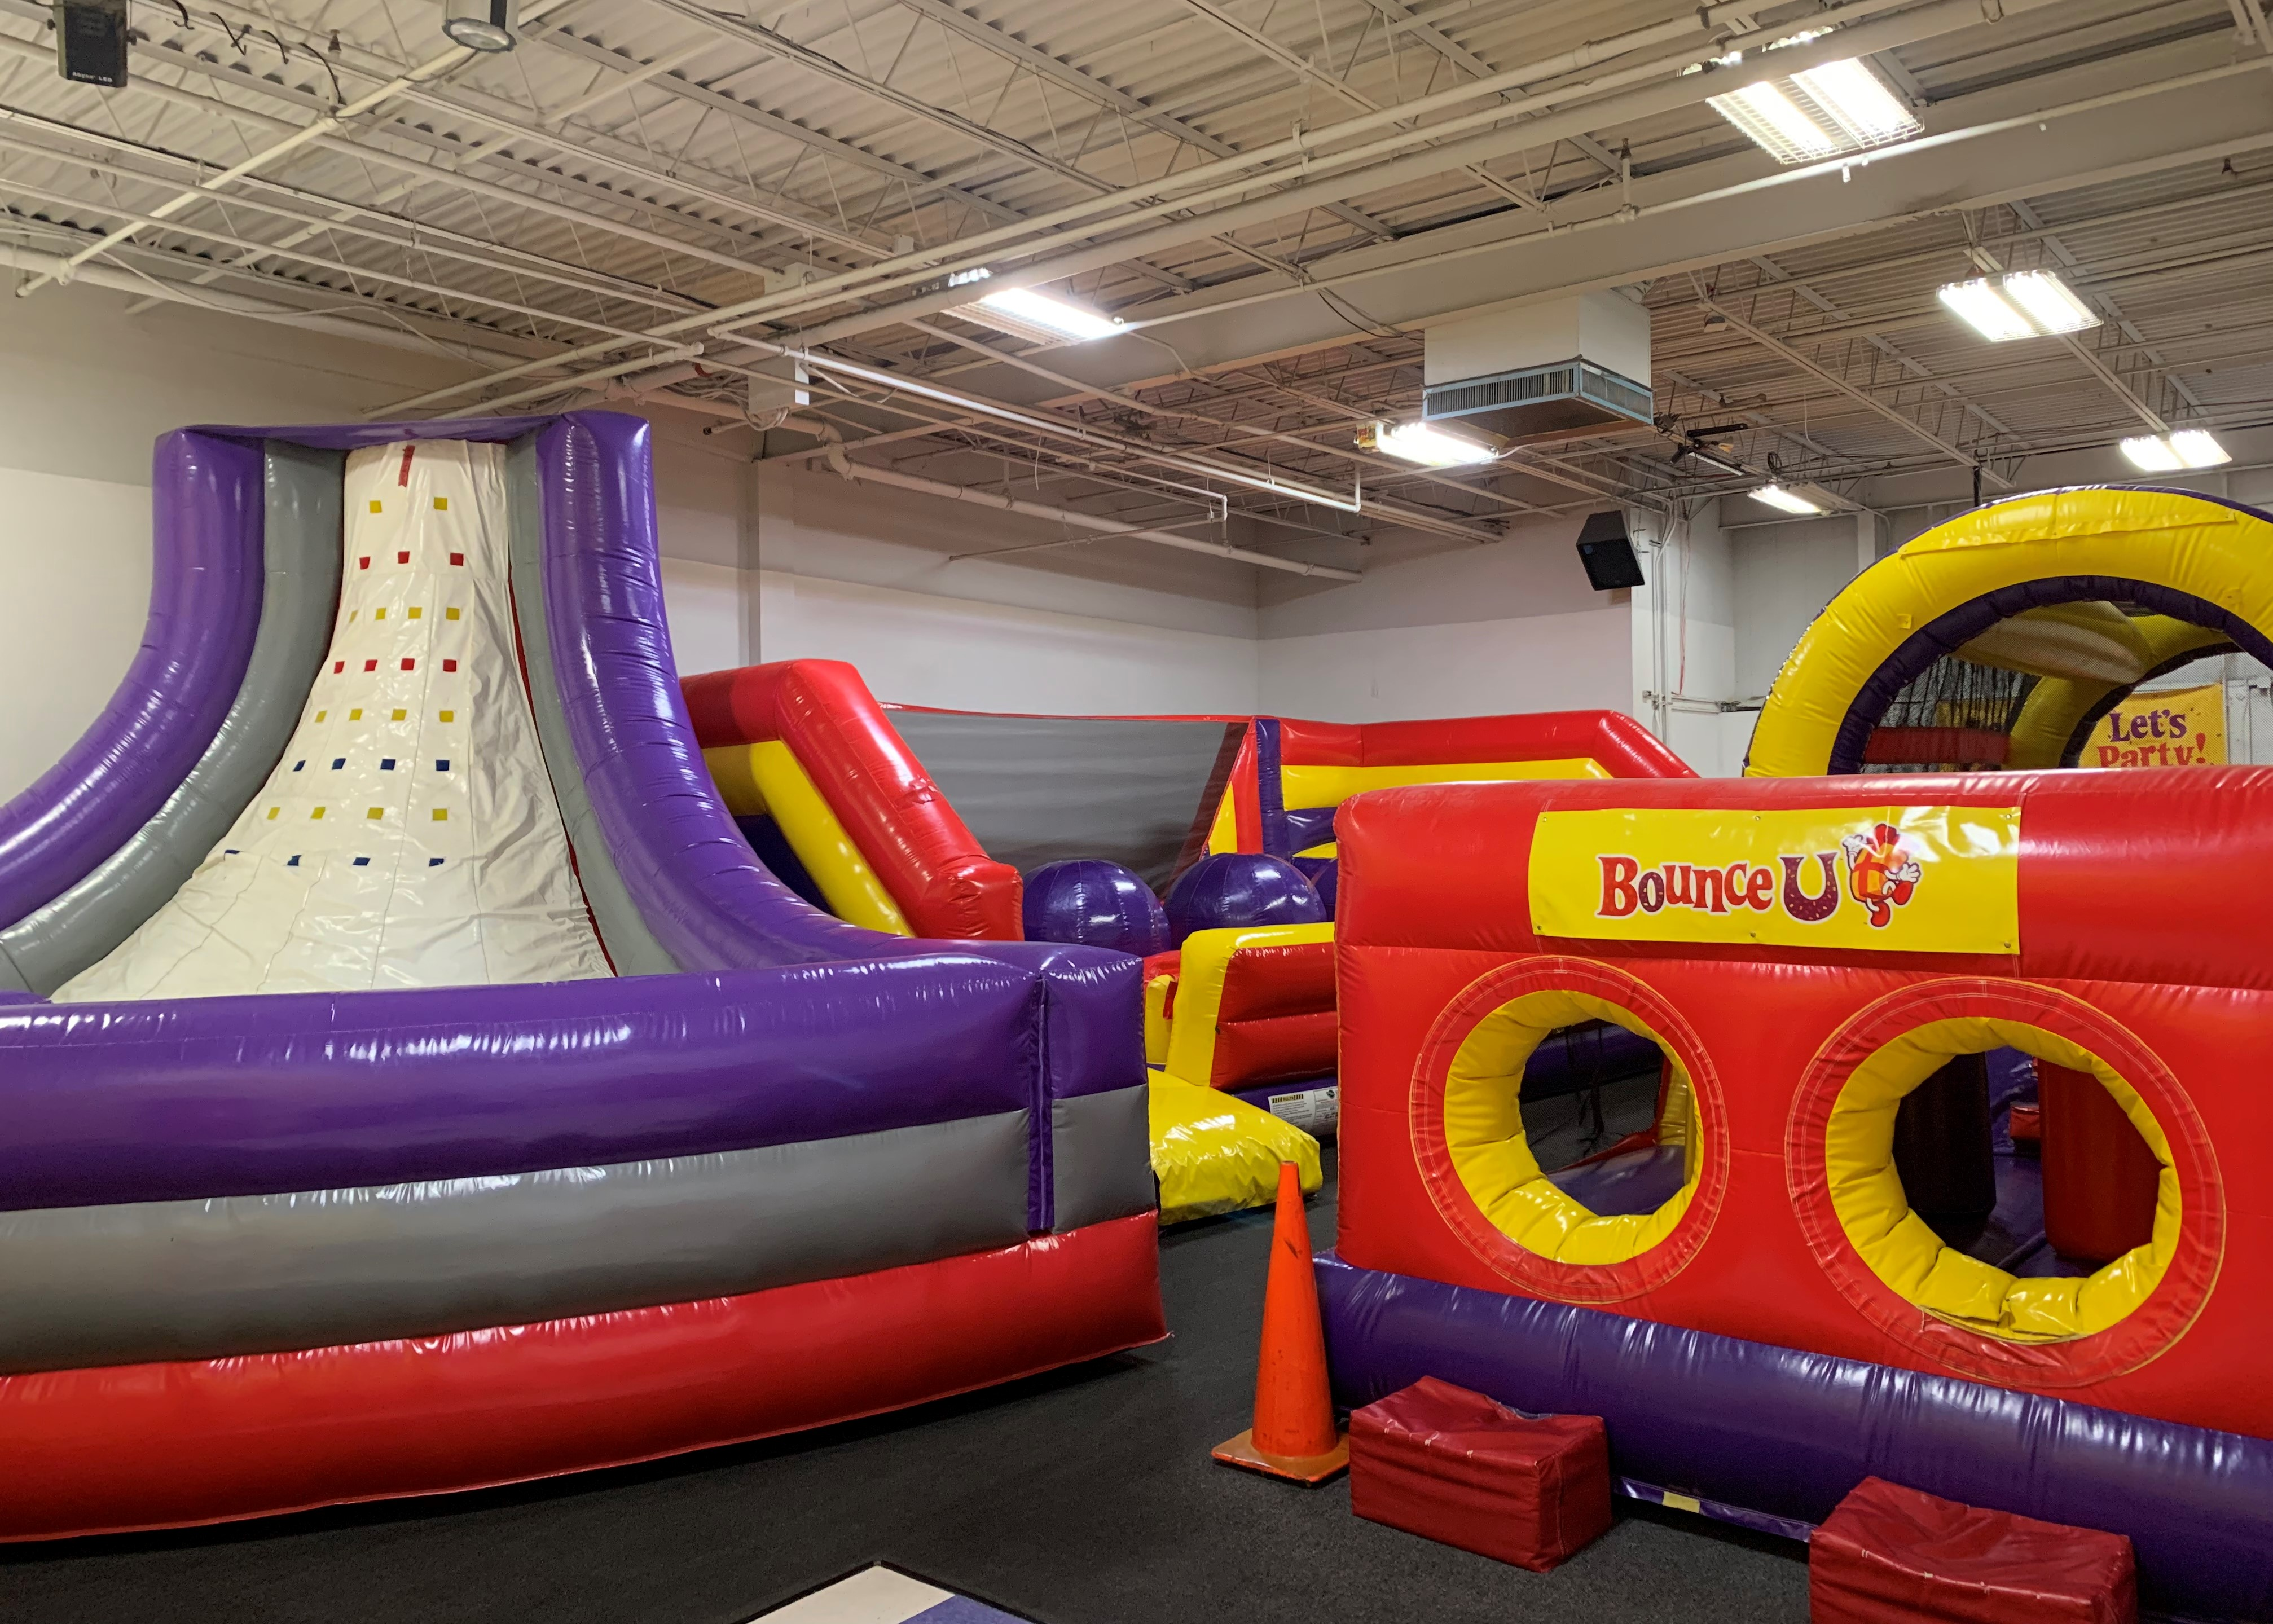 BounceU birthday party arena space with three large inflatable rides for private parties.